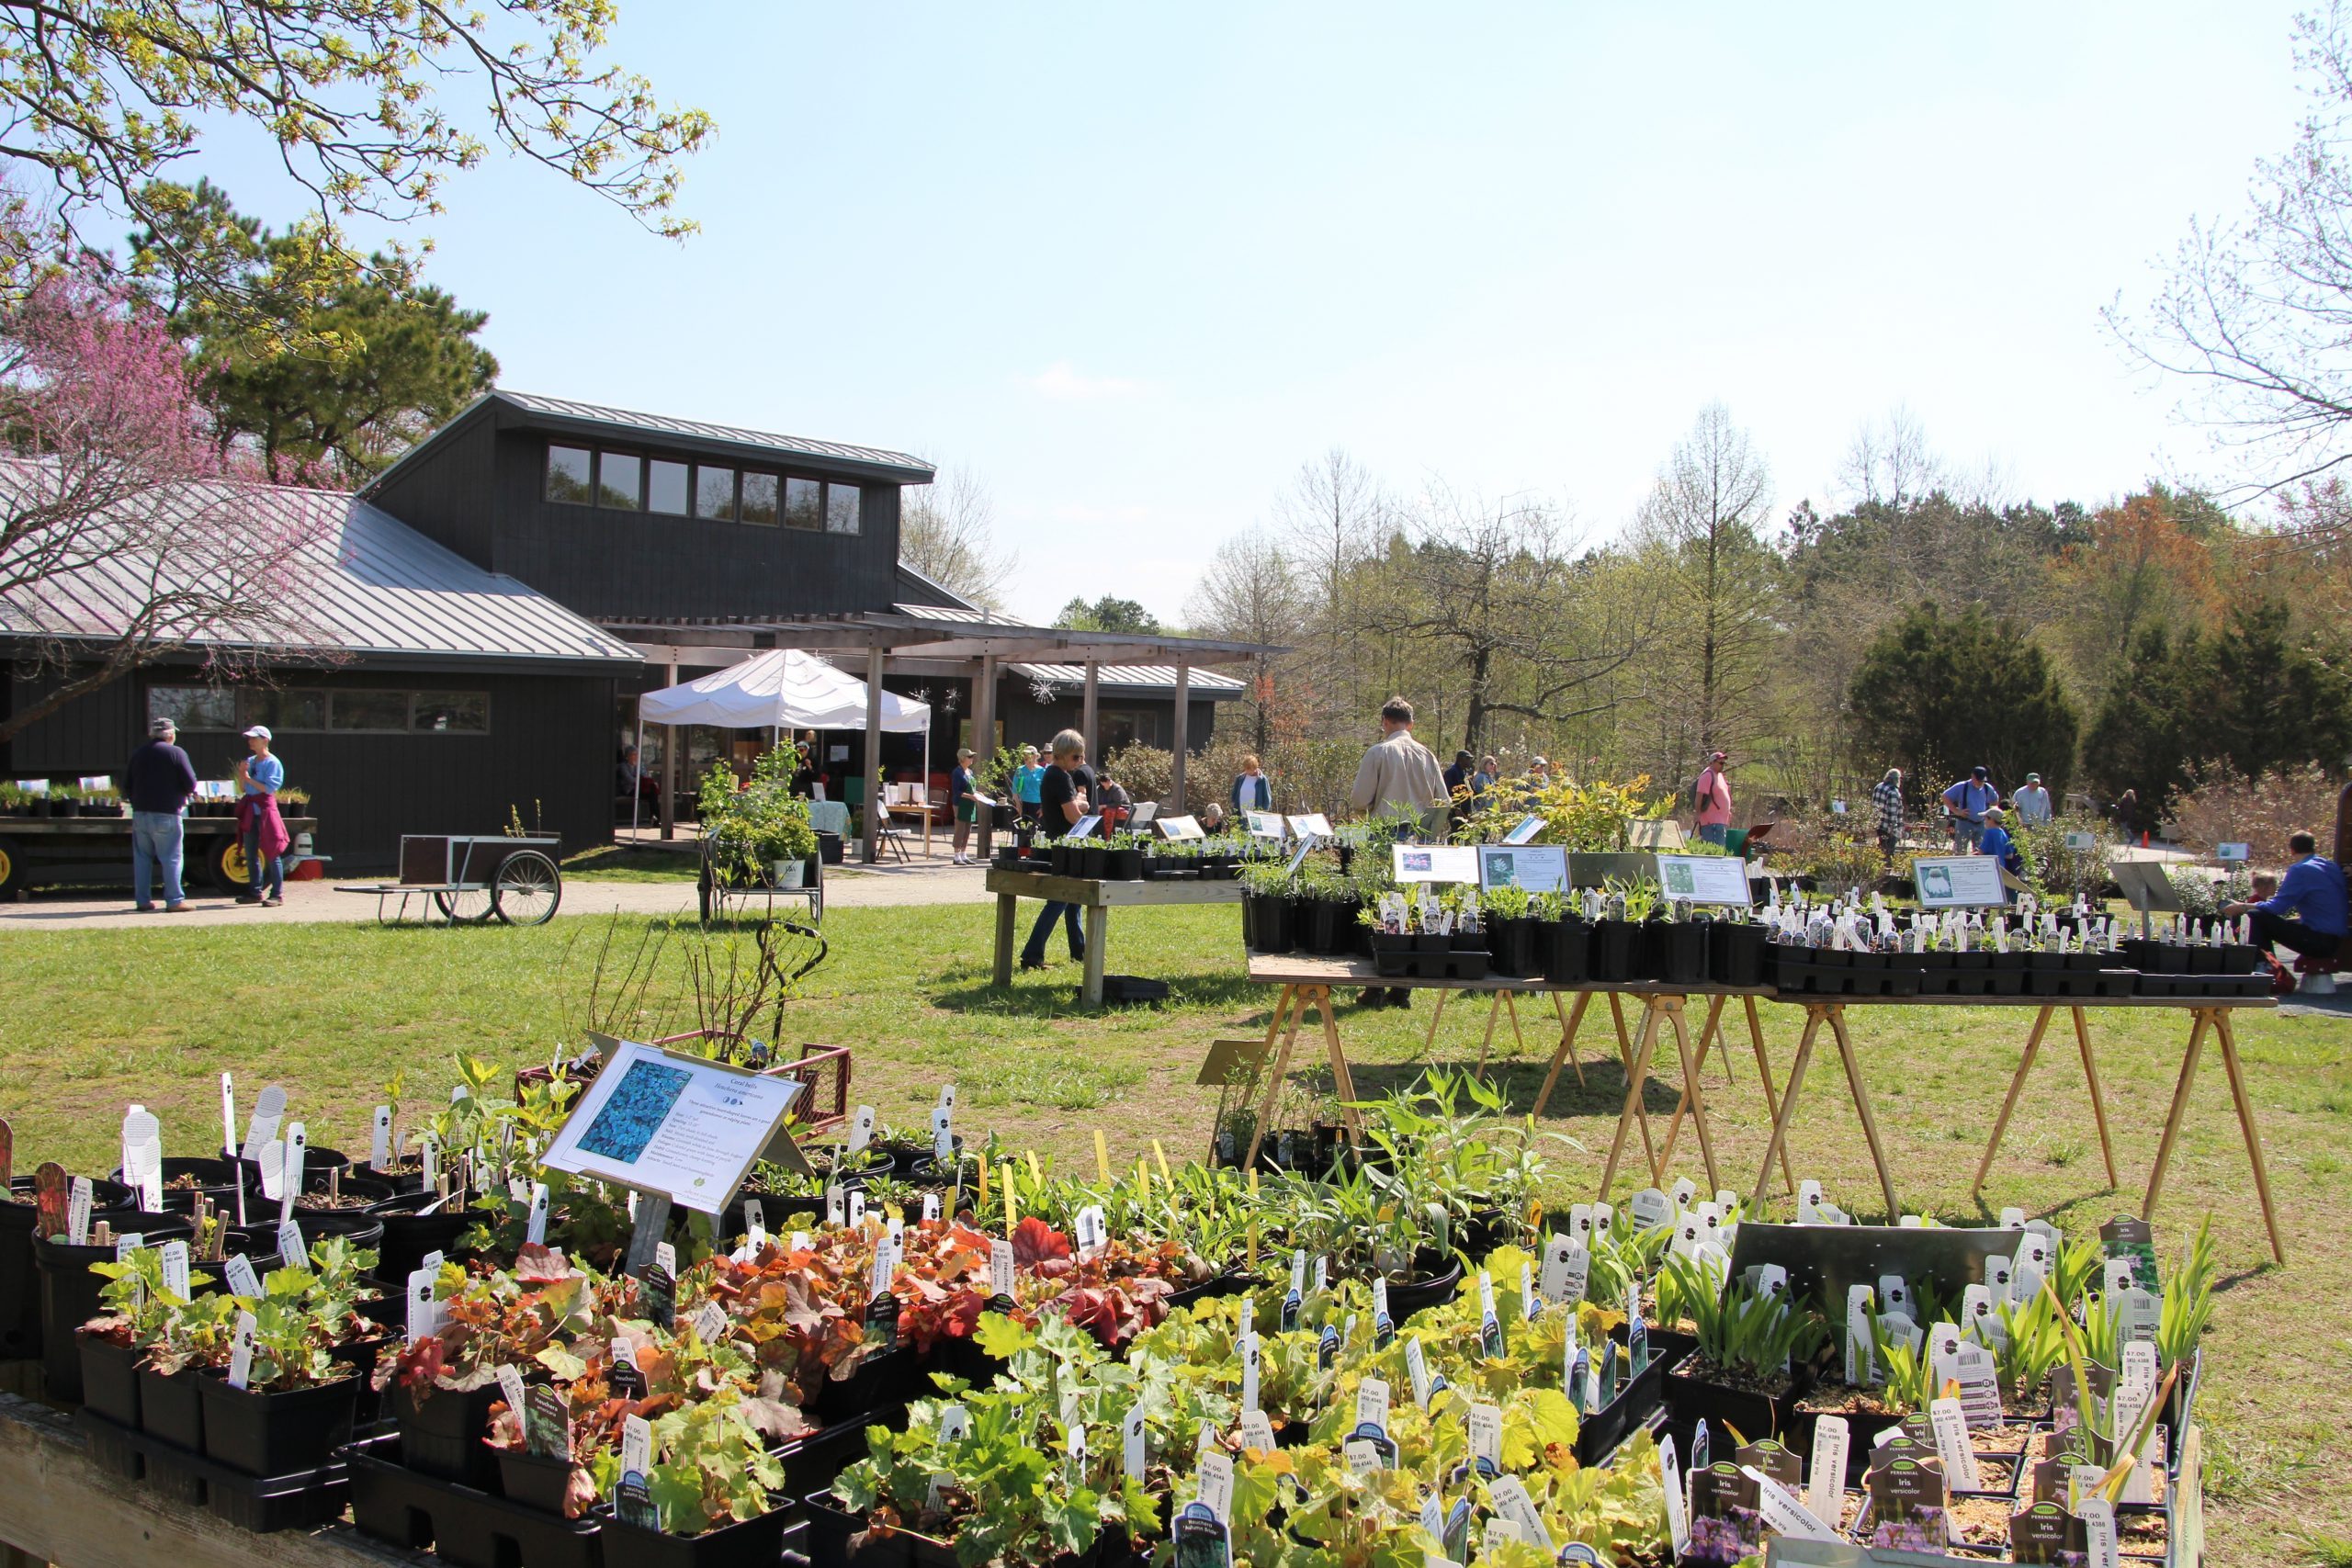 Adkins Arboretum Announces Spring Native Plant Sale